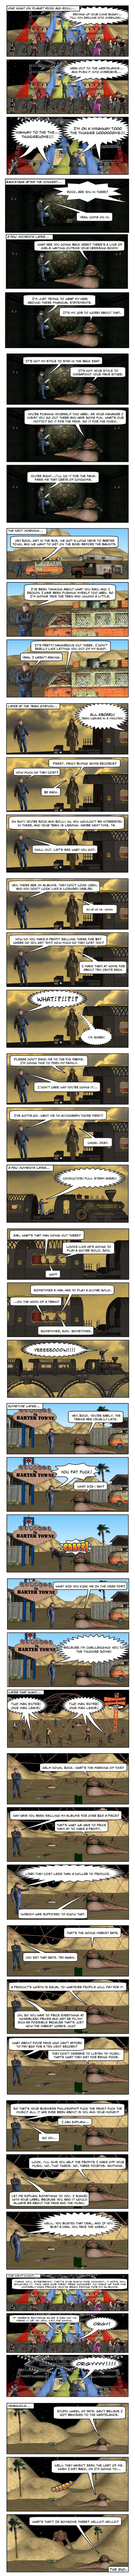 (Comic) Highway To The Thunderdome: A Story About Pirating Music